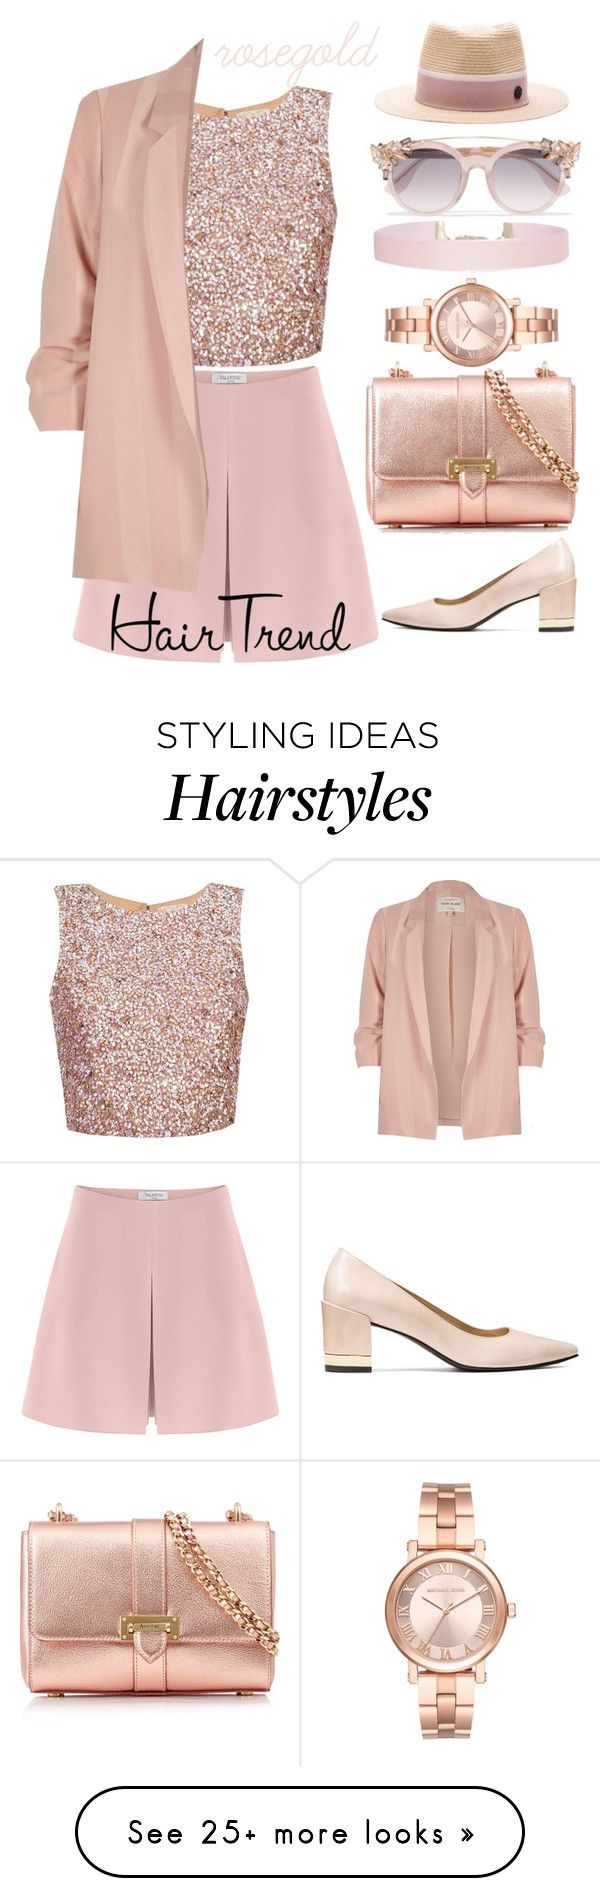 """""""495"""" by jujju-w on Polyvore featuring Valentino, River Island, Aspinal of London, Jimmy Choo, Humble Chic, Michael Kors, Maison Michel, hairtrend, rosegold and rainbowhair"""